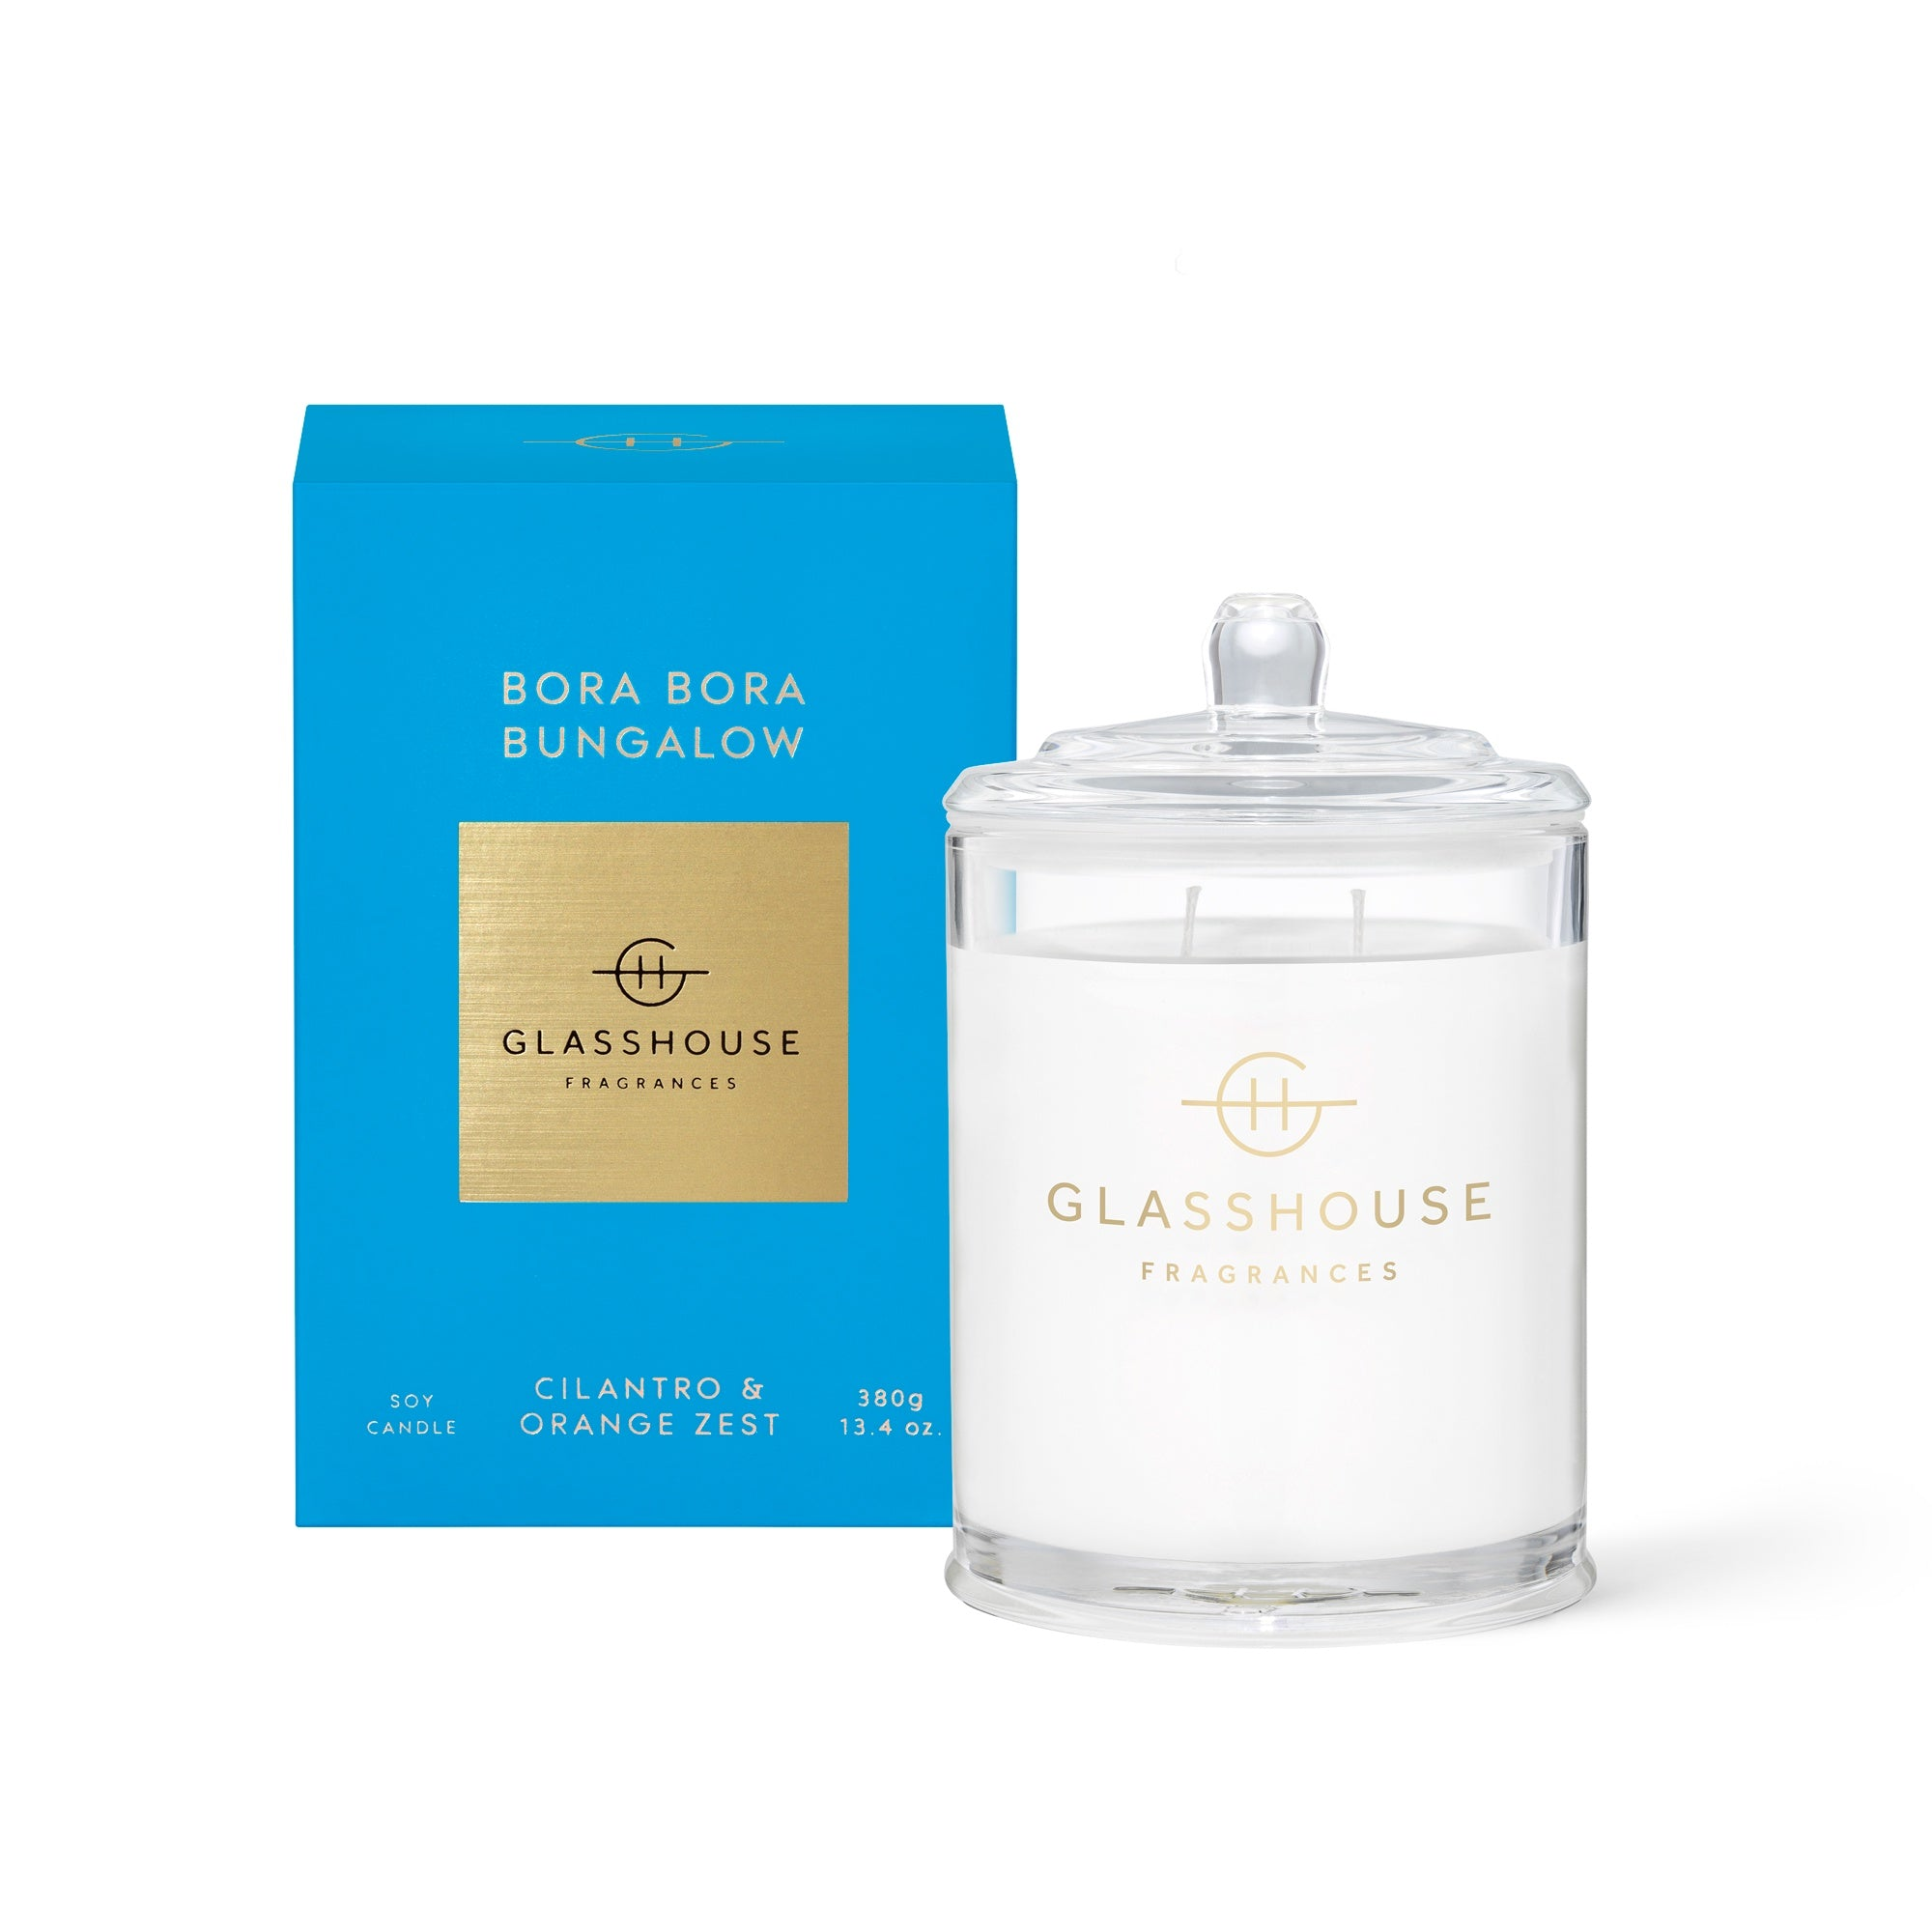 Bora Bora Bungalow Soy Candle - Cilantro and Orange Zest